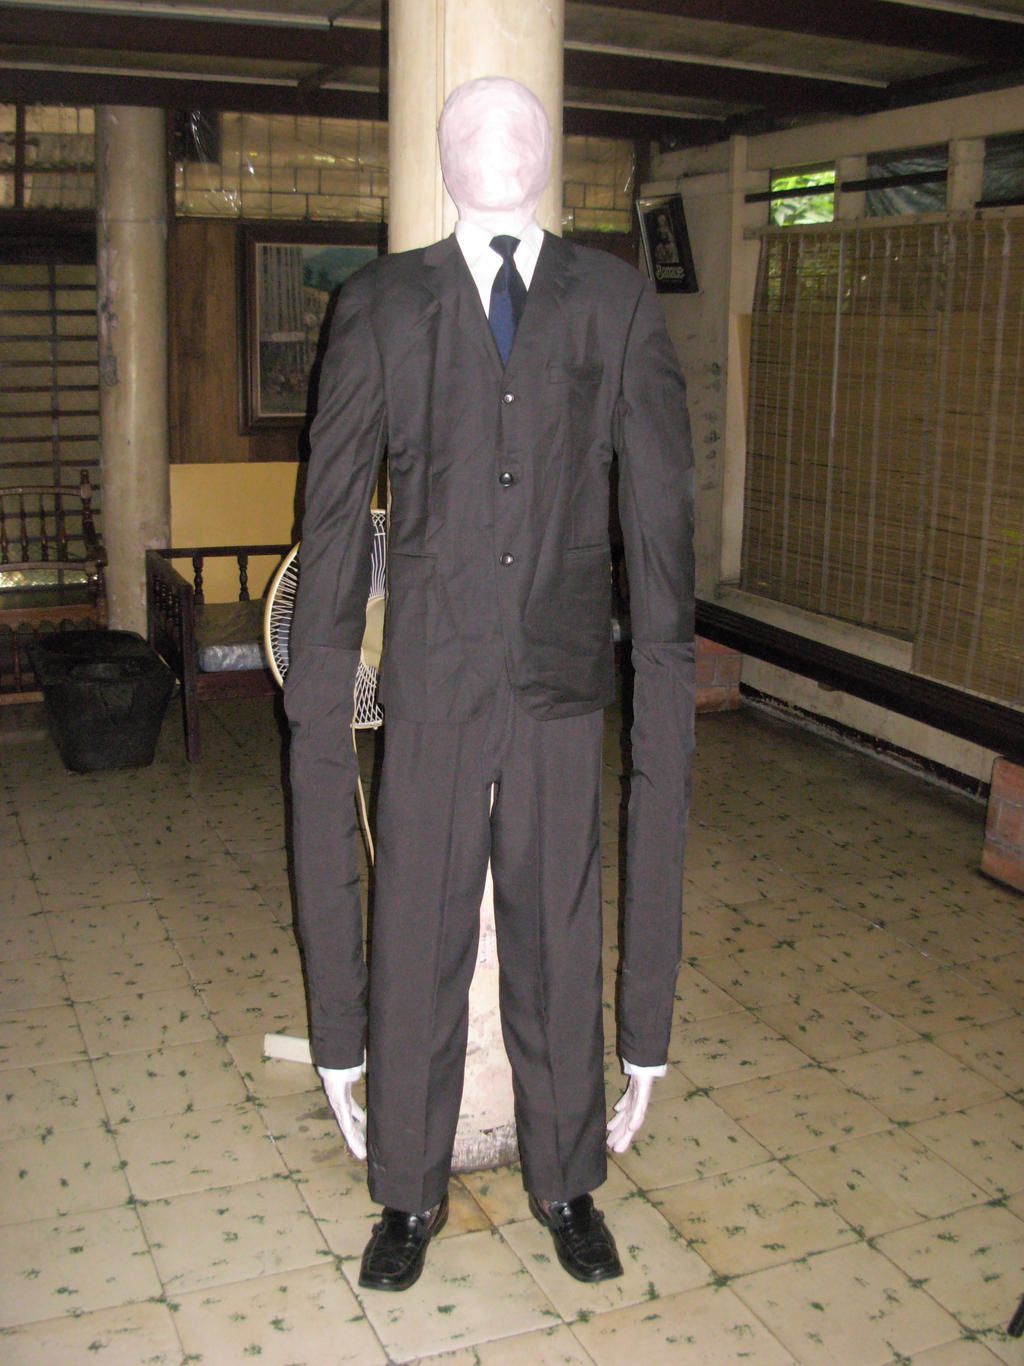 The Slender Man (also known as Slenderman) is a supernatural creature with nebulously defined characteristics and abilities. Slender Man was first mentioned in Something Awful Forum's